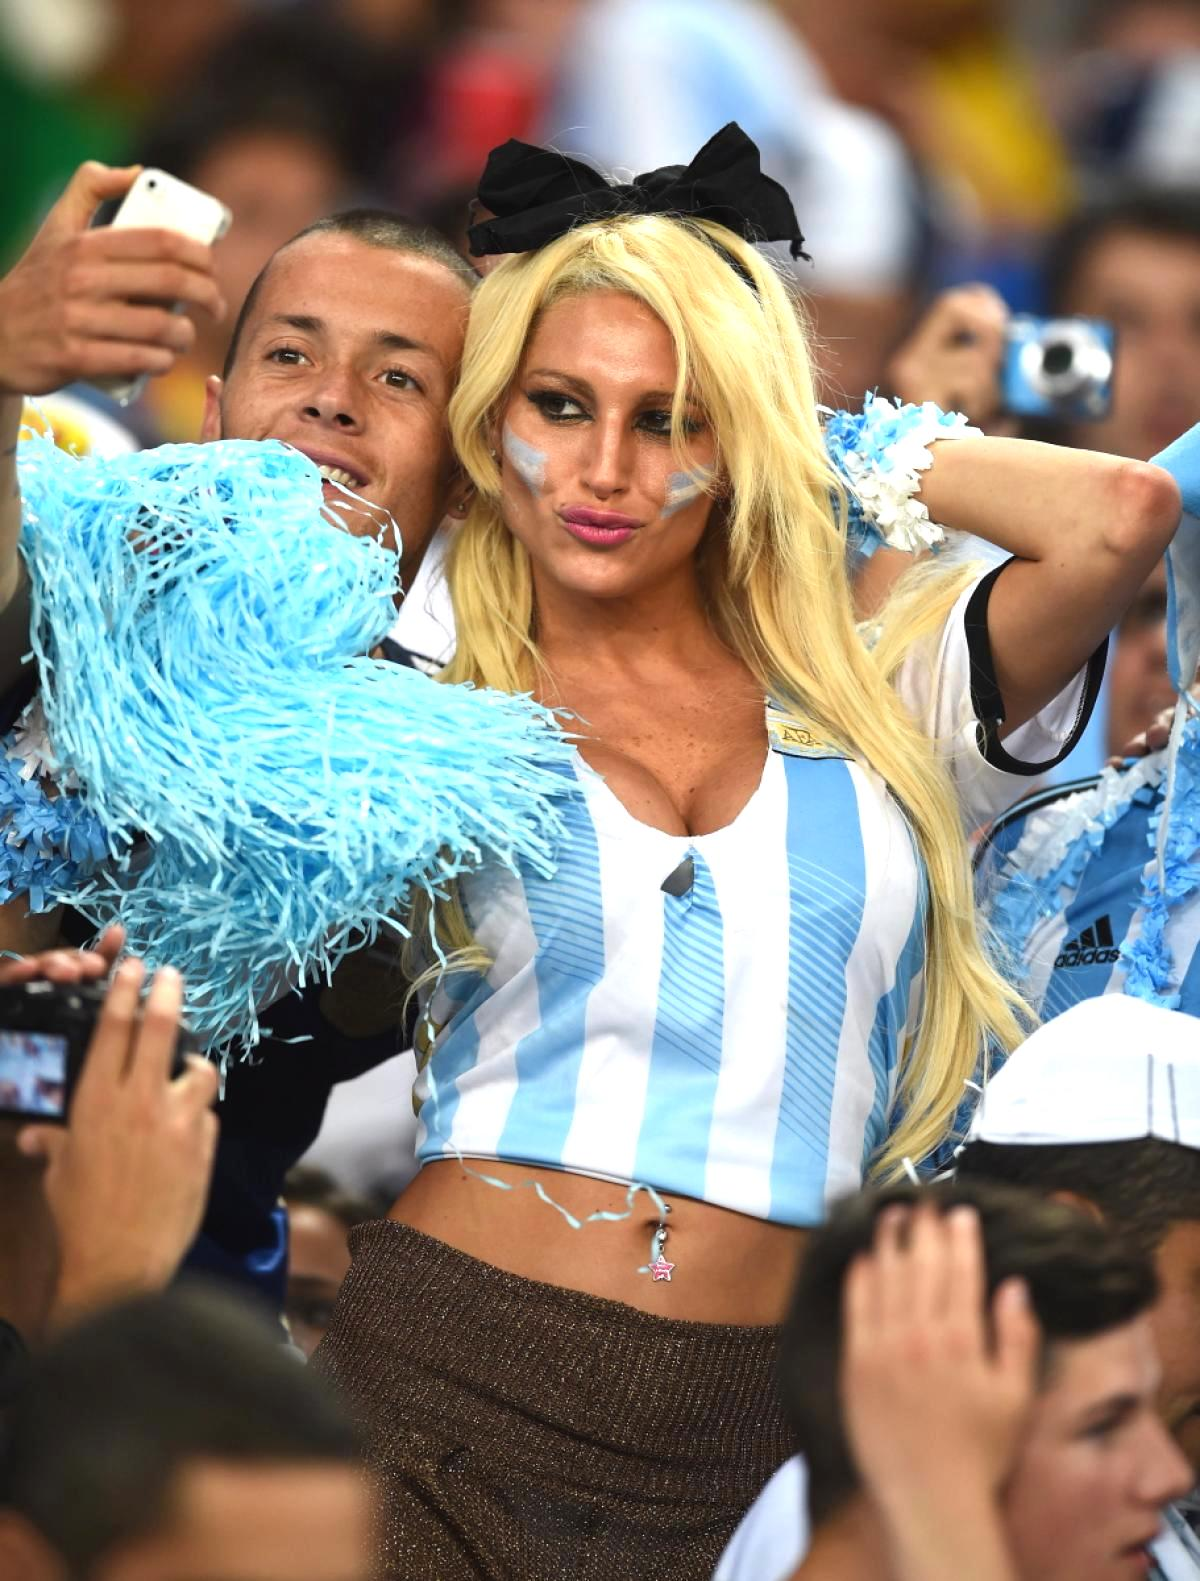 21 hot argentina fan - hottest female fans 2014 world cup